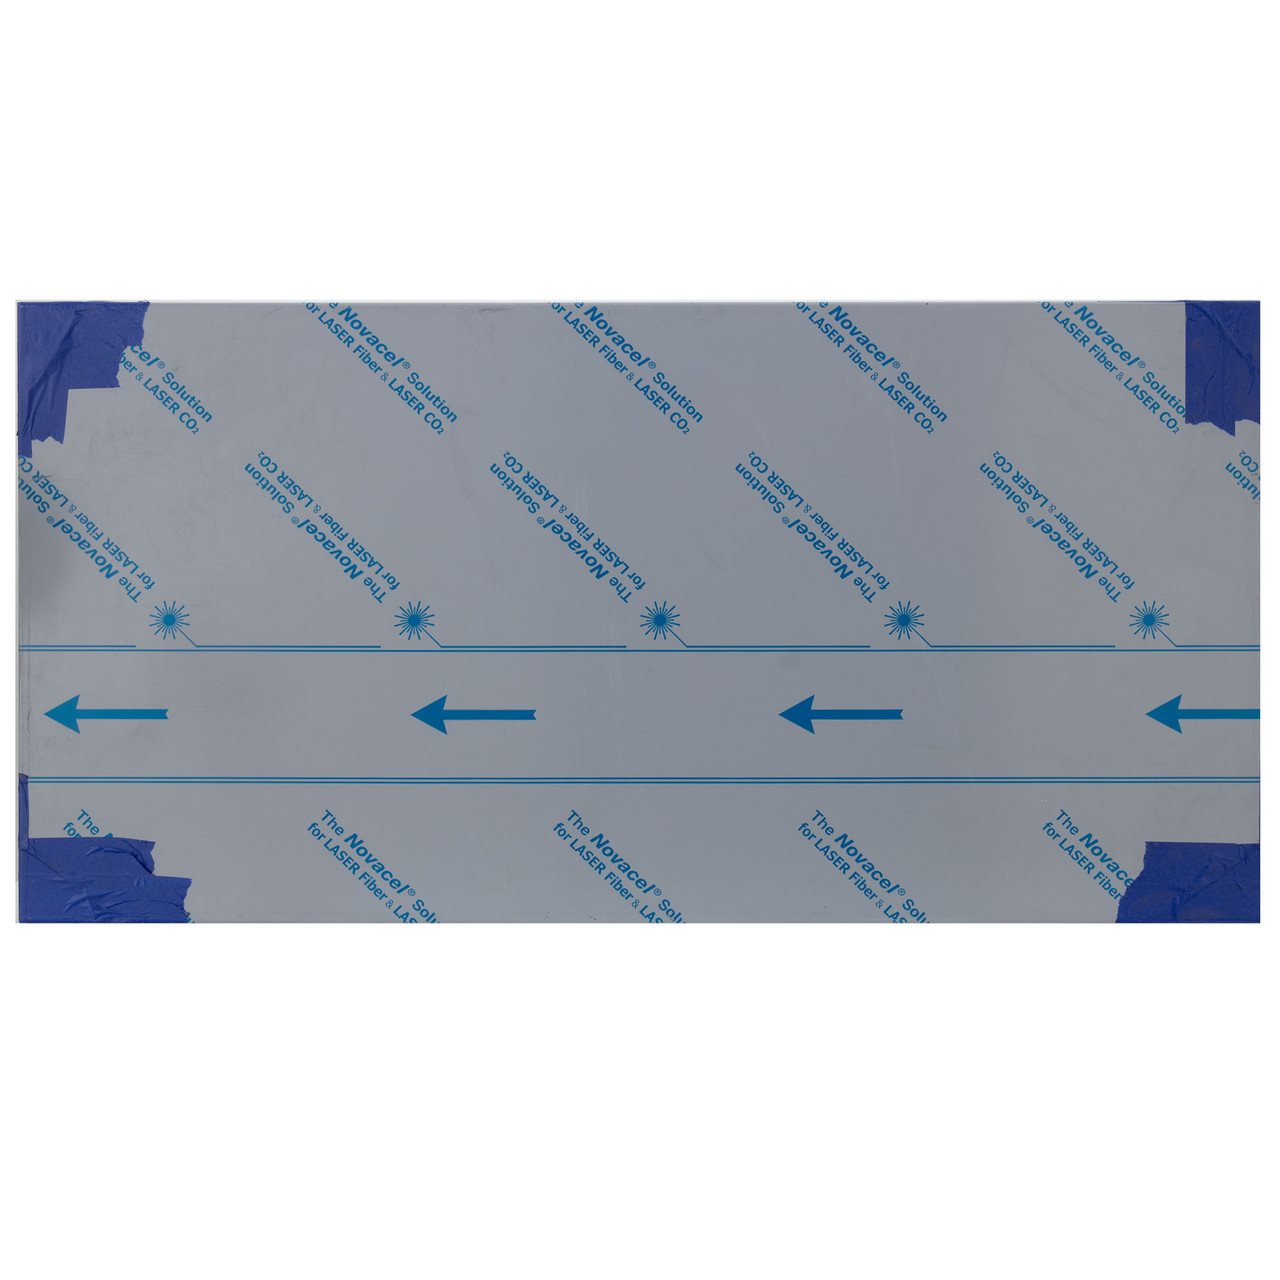 """NOVACEL SOLUTION STAINLESS STEEL 4 8/"""" X 14/""""  PLASTIC ONE SIDE SHEETS  16 GA"""